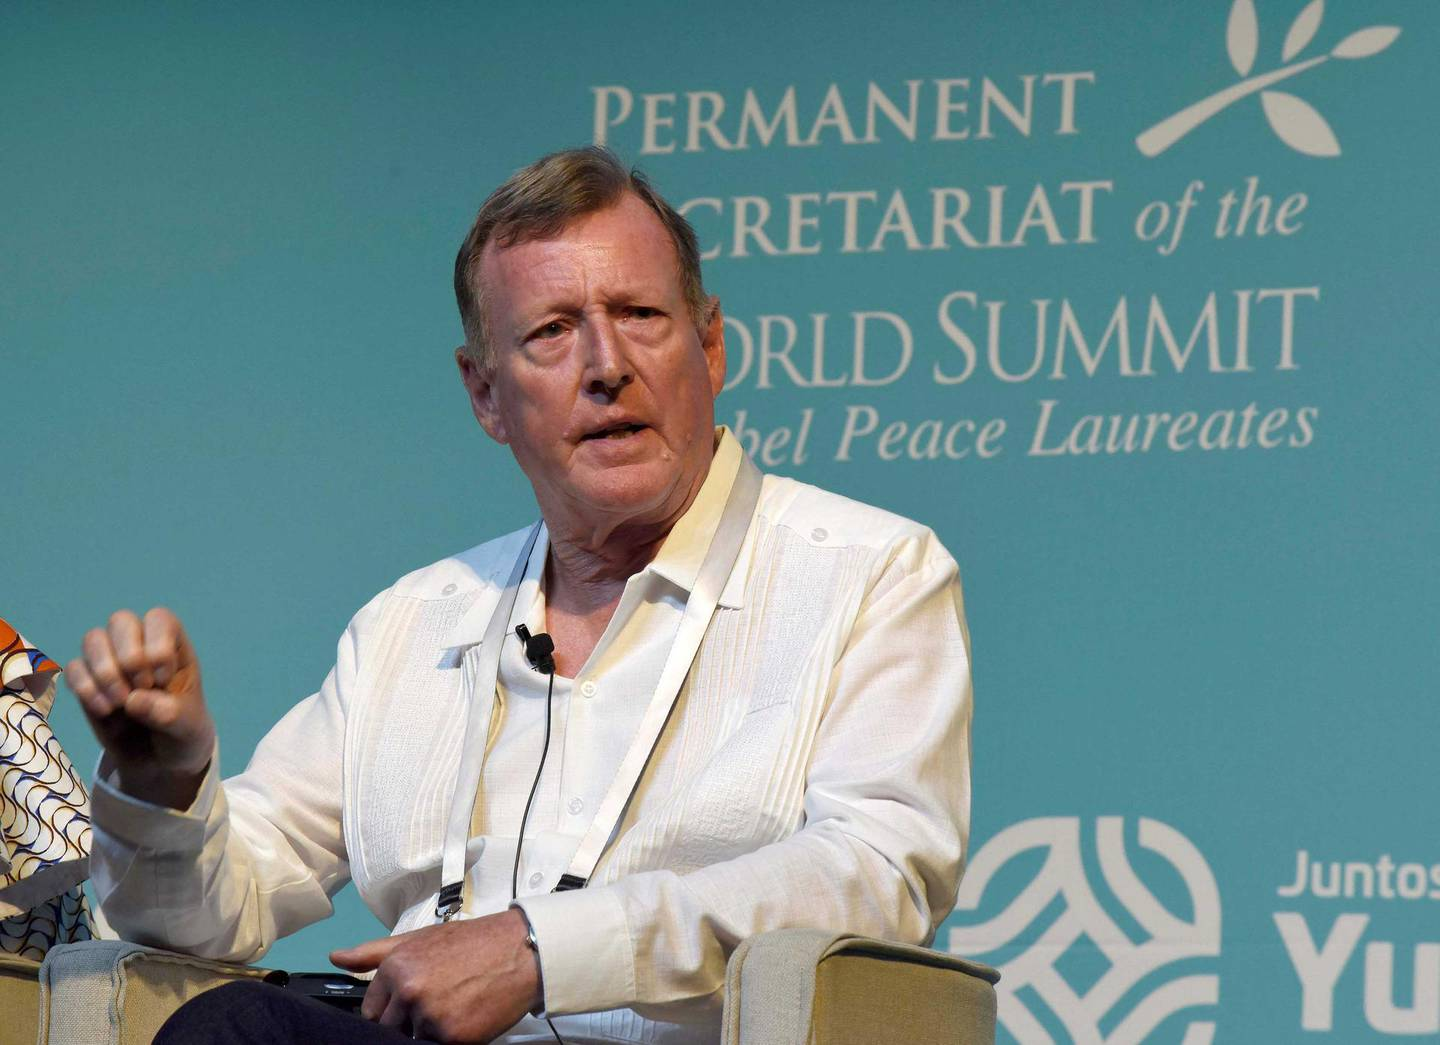 Mandatory Credit: Photo by CUAUHTEMOC MORENO/EPA-EFE/Shutterstock (10418848c)IrishNobel Peace Prize laureate David Trimble participates in a lecture at the World Summit of Nobel Peace Laureates in Merida, Mexico, 19 September 2019. The summit will be held from 19 September to 22 September 2019.World Summit of Nobel Peace Laureates held in Mexico, Merida - 19 Sep 2019